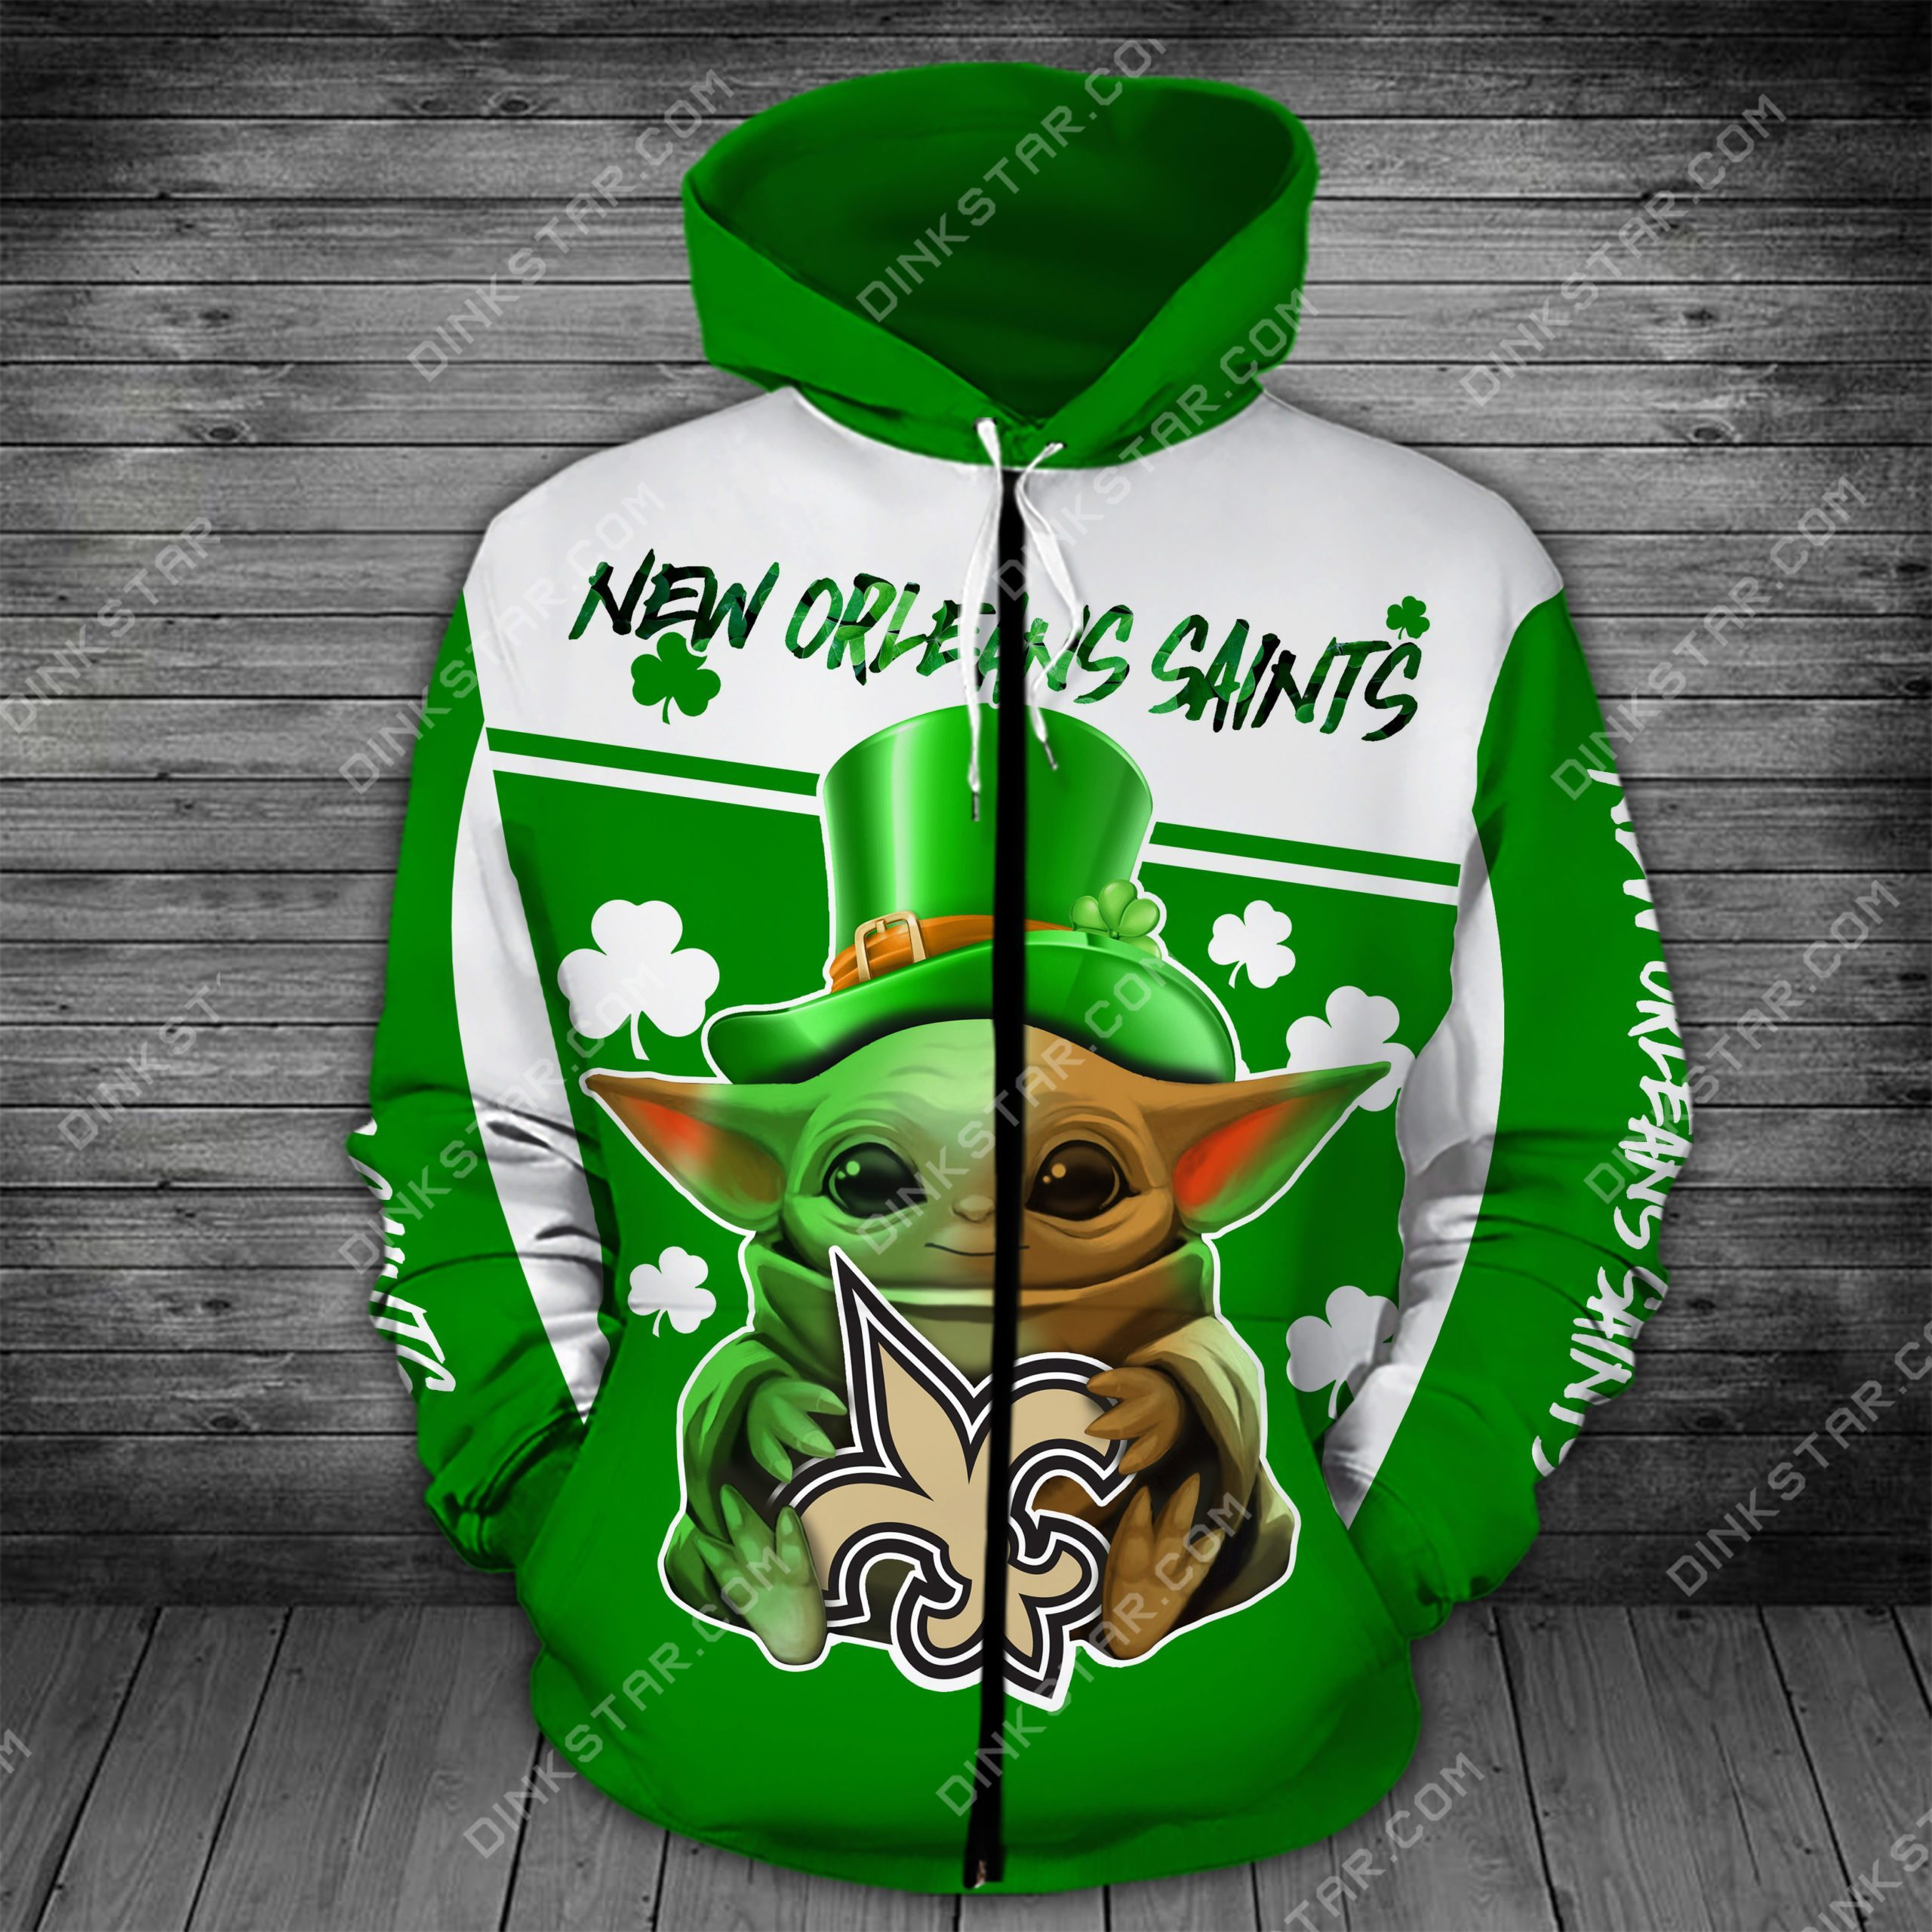 New orleans saints baby yoda saint patrick's day full printing zip hoodie